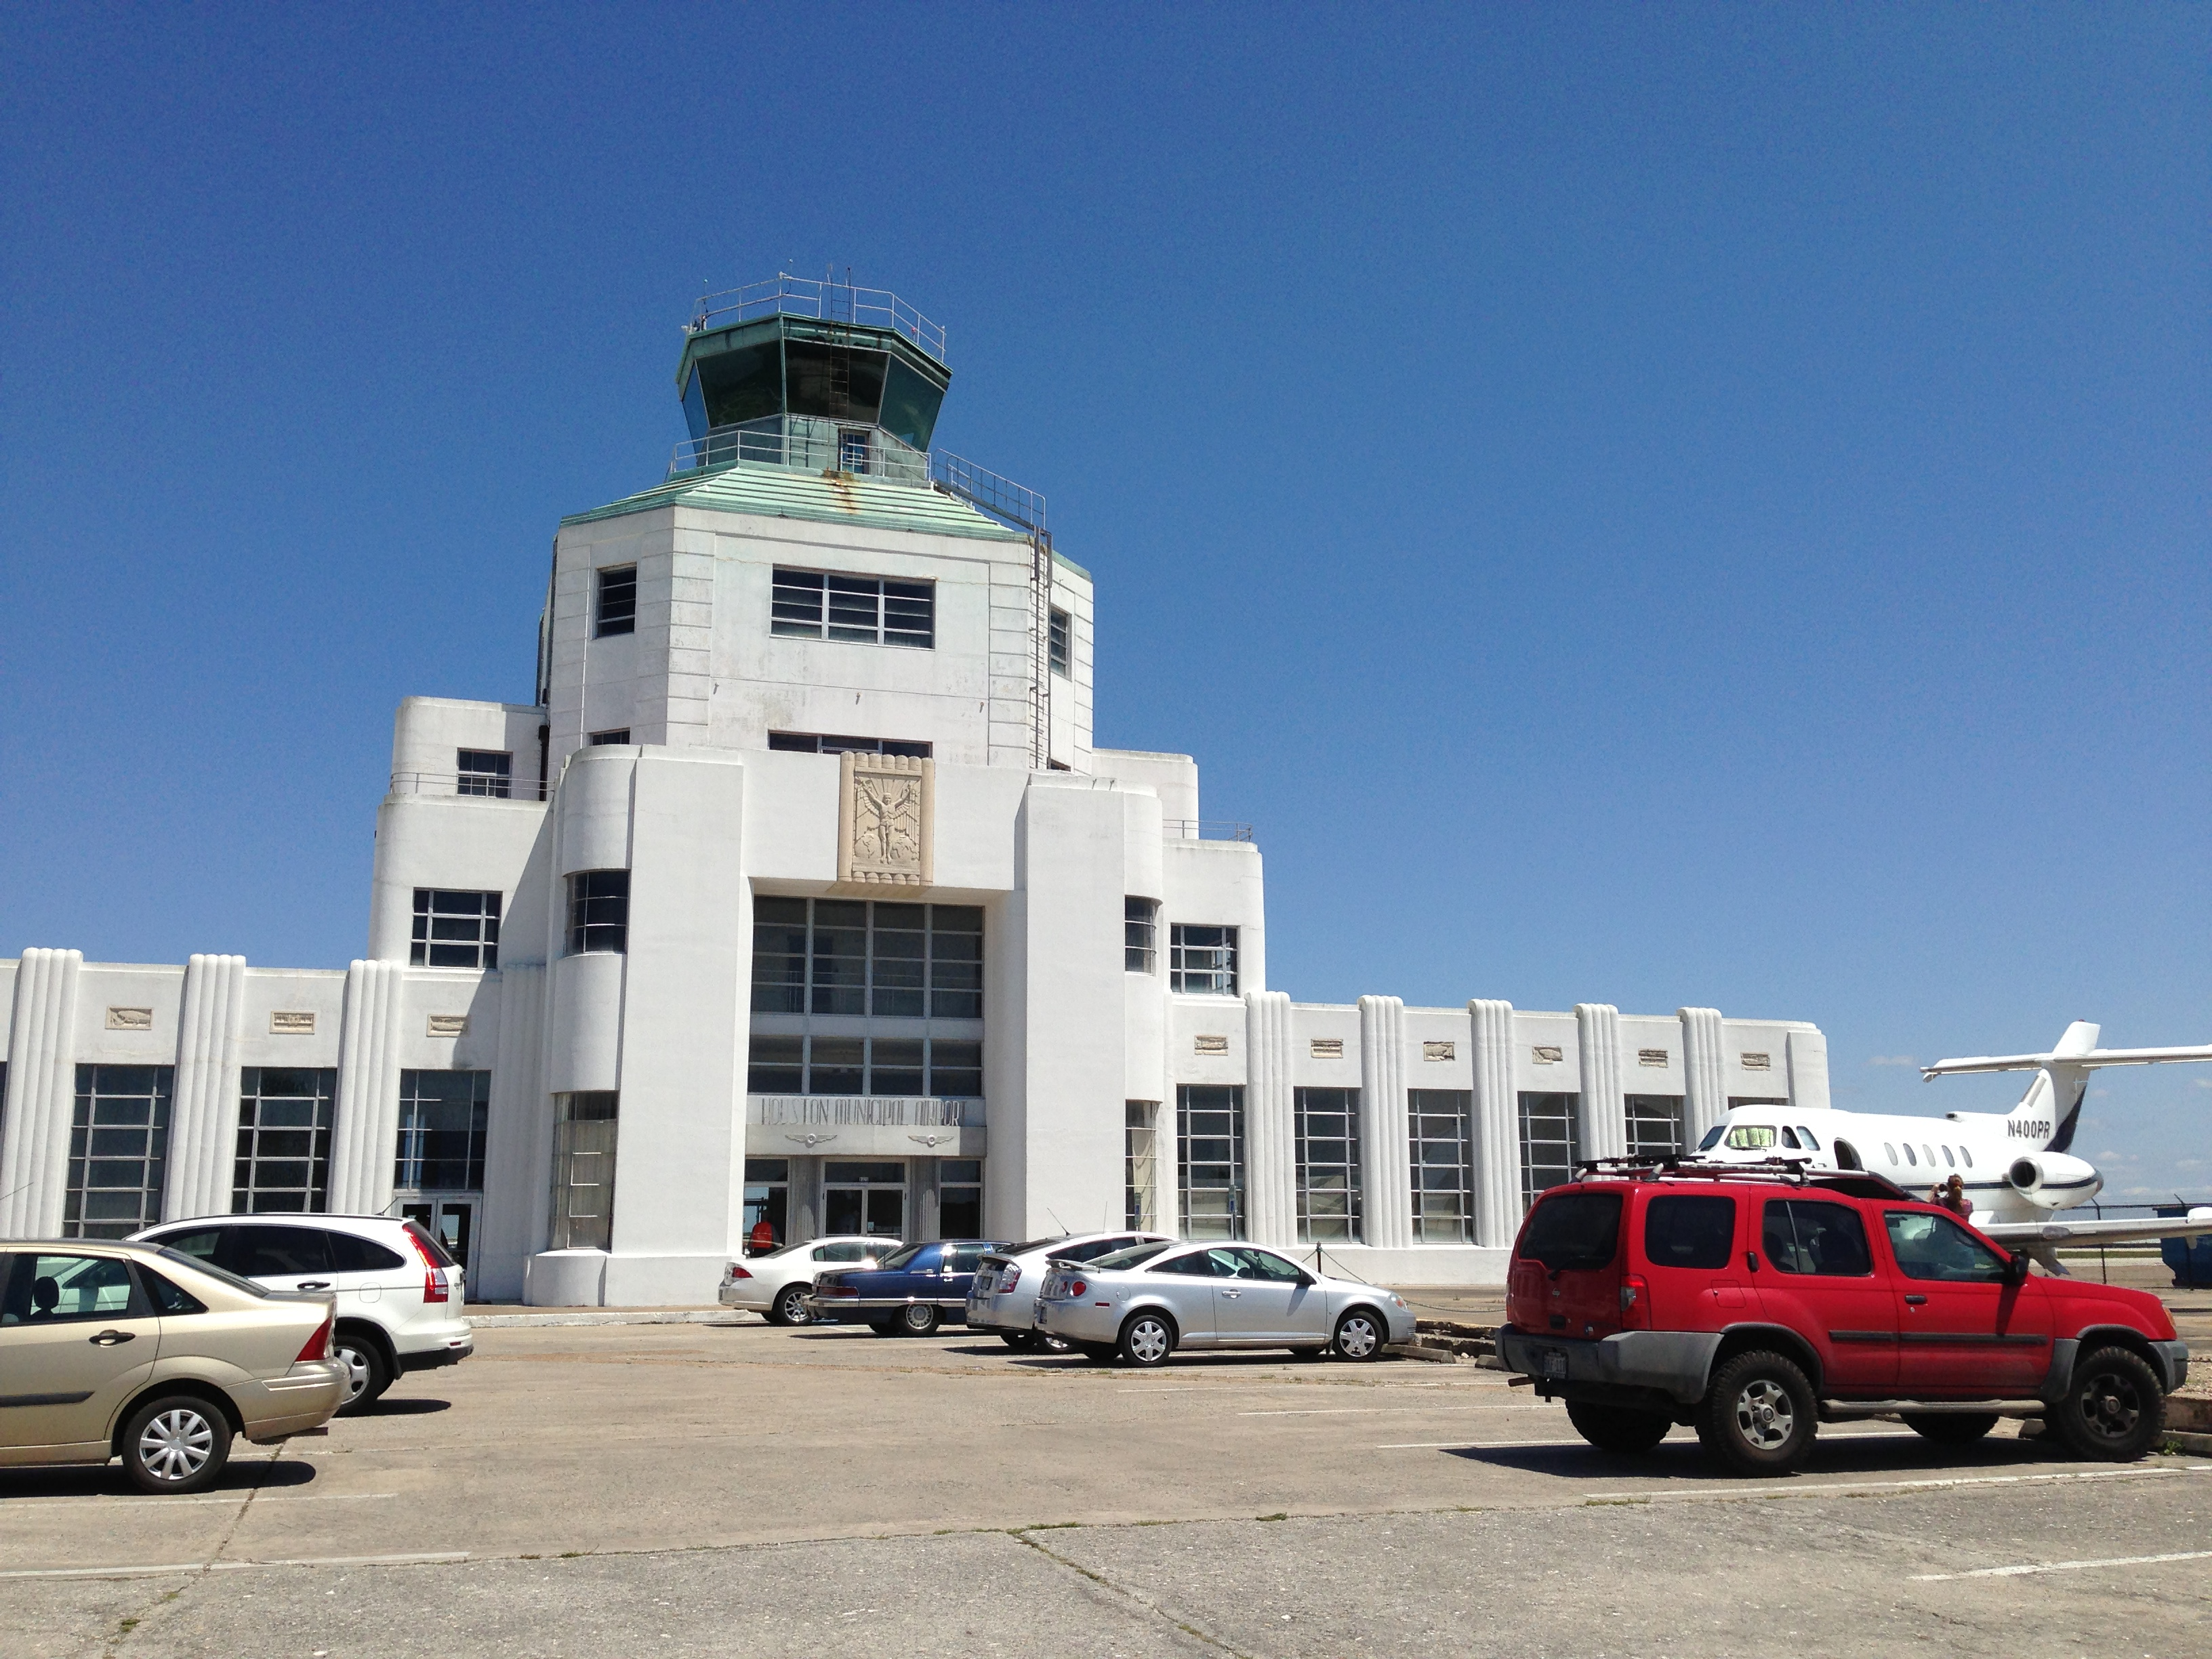 Five museums for five bucks in houston part i 1940 air terminal museum queen of fire for Air deco